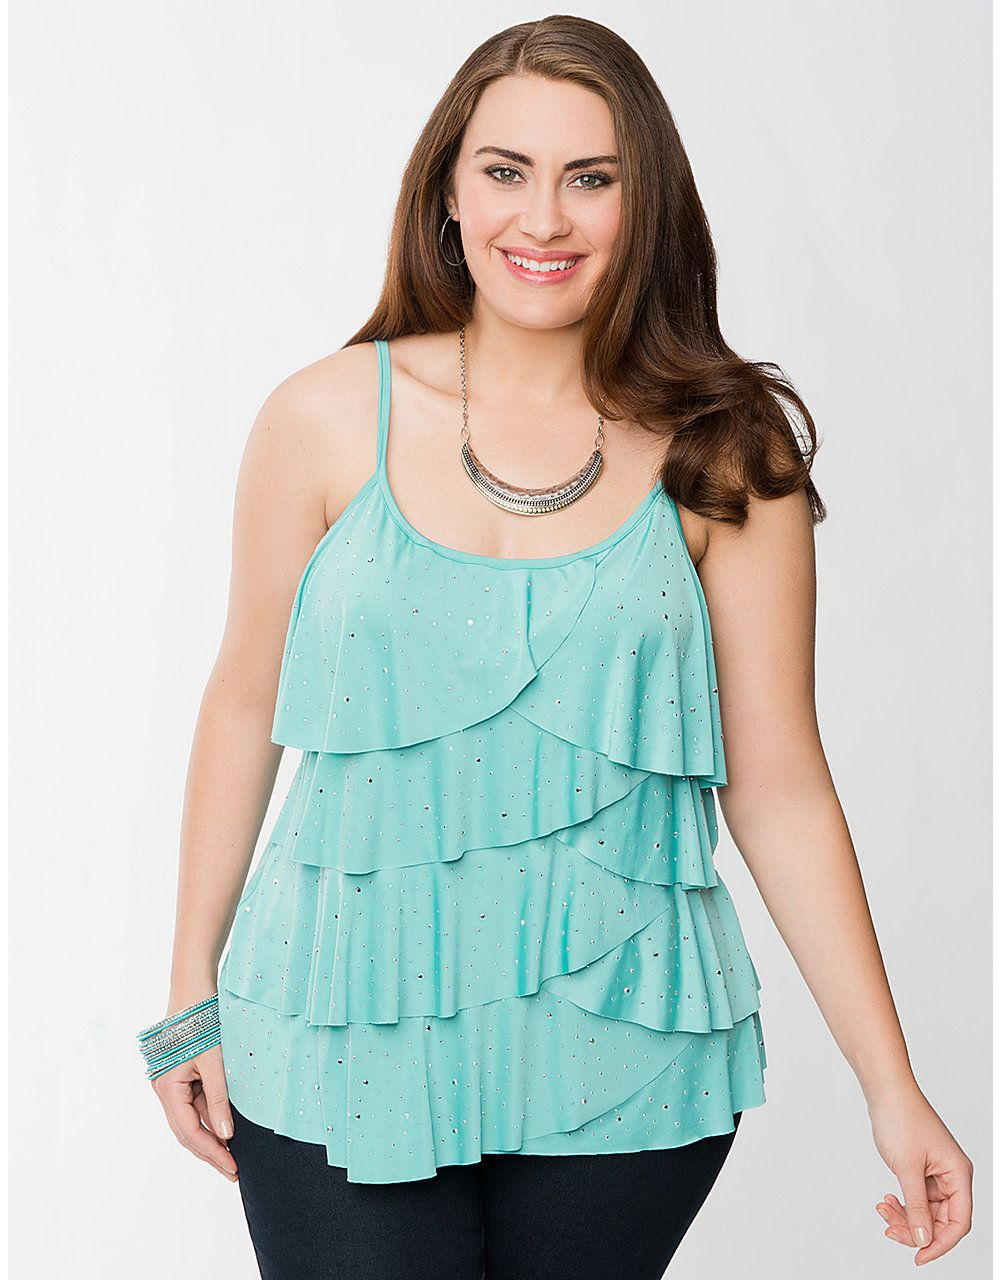 Studded Layered Cami by Lane Bryant | Lane Bryant | Tops Tees Tanks ...